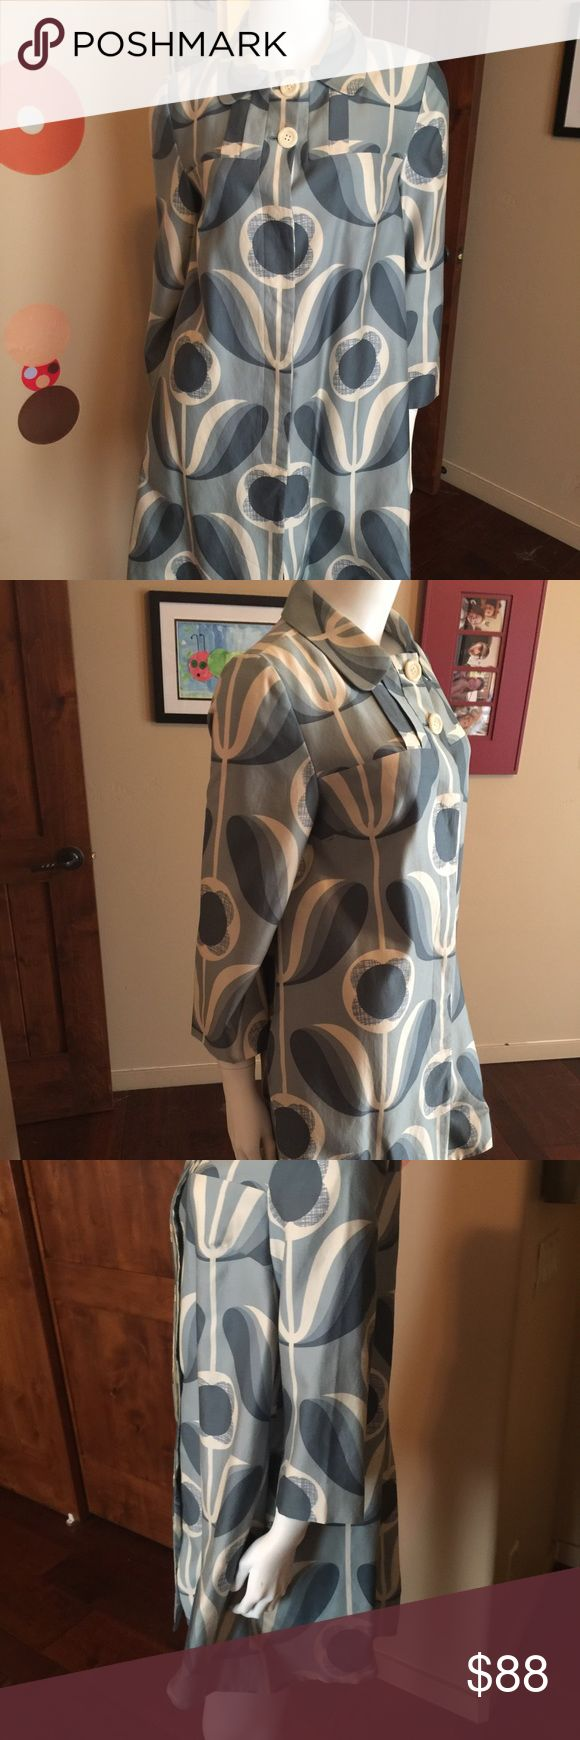 """Orla Kiely wallflower Print Jacket Coat size 8 Rare find Orla Kiely wallflower print jacket Size 8 Fabric: 63%. Cotton 36% rayon 1% silk Fully Lined  17"""" across armpit to armpit 35"""" length Condition: good used condition for three untreated stains around right armpit please see pic  Feel free to contact me with any questions.  Thanks for looking. Please take a peek at my other items for sale.  Smoke free home Orla Kiely Jackets & Coats Trench Coats"""